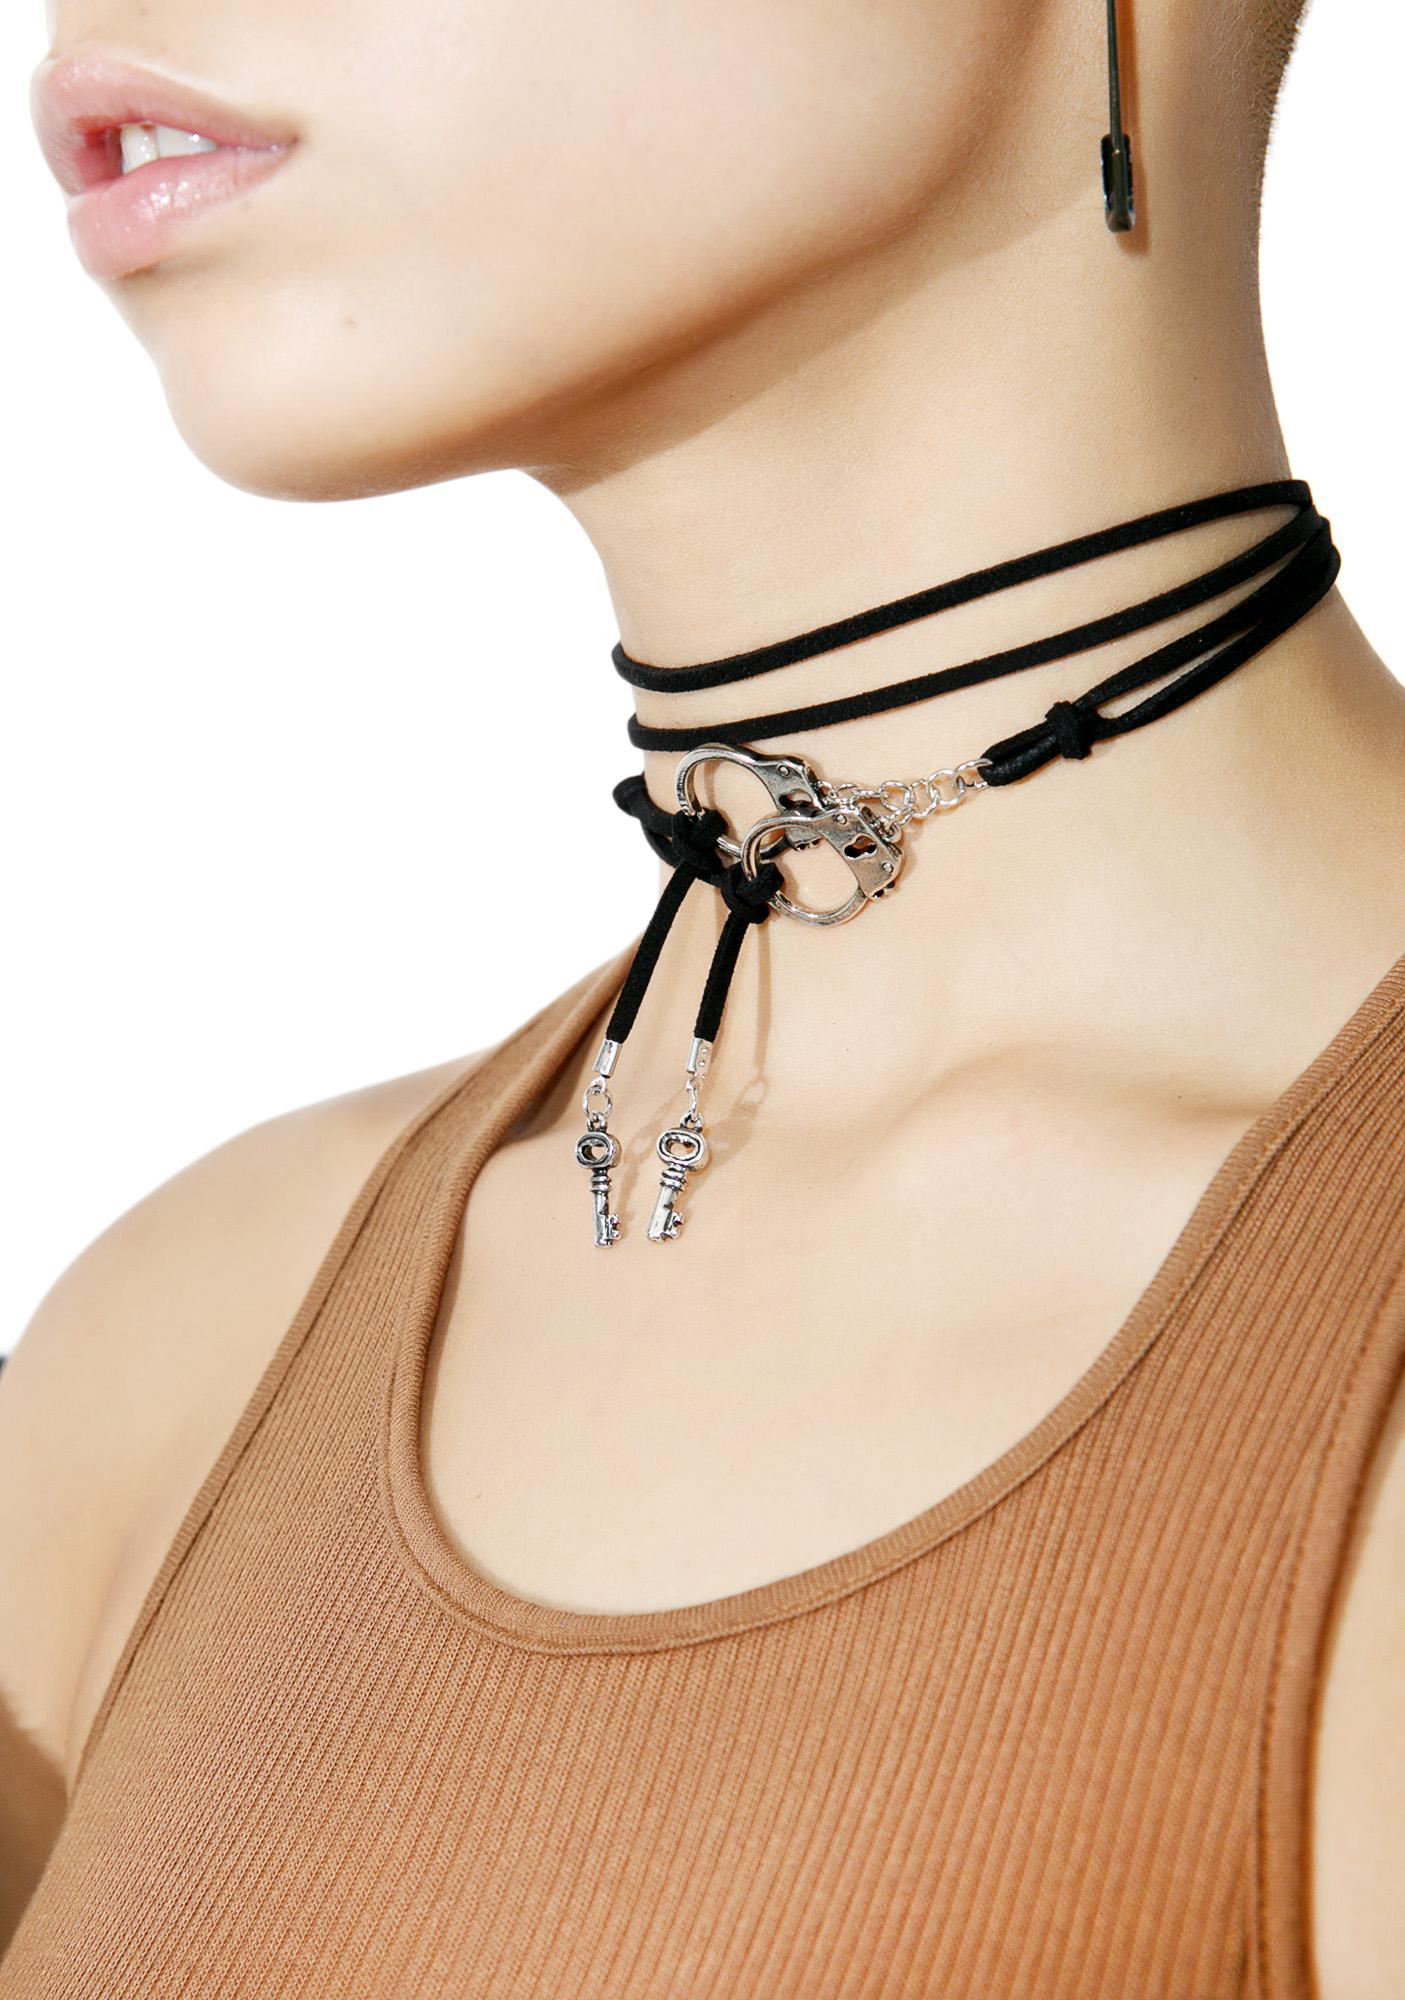 Partner In Crime Choker